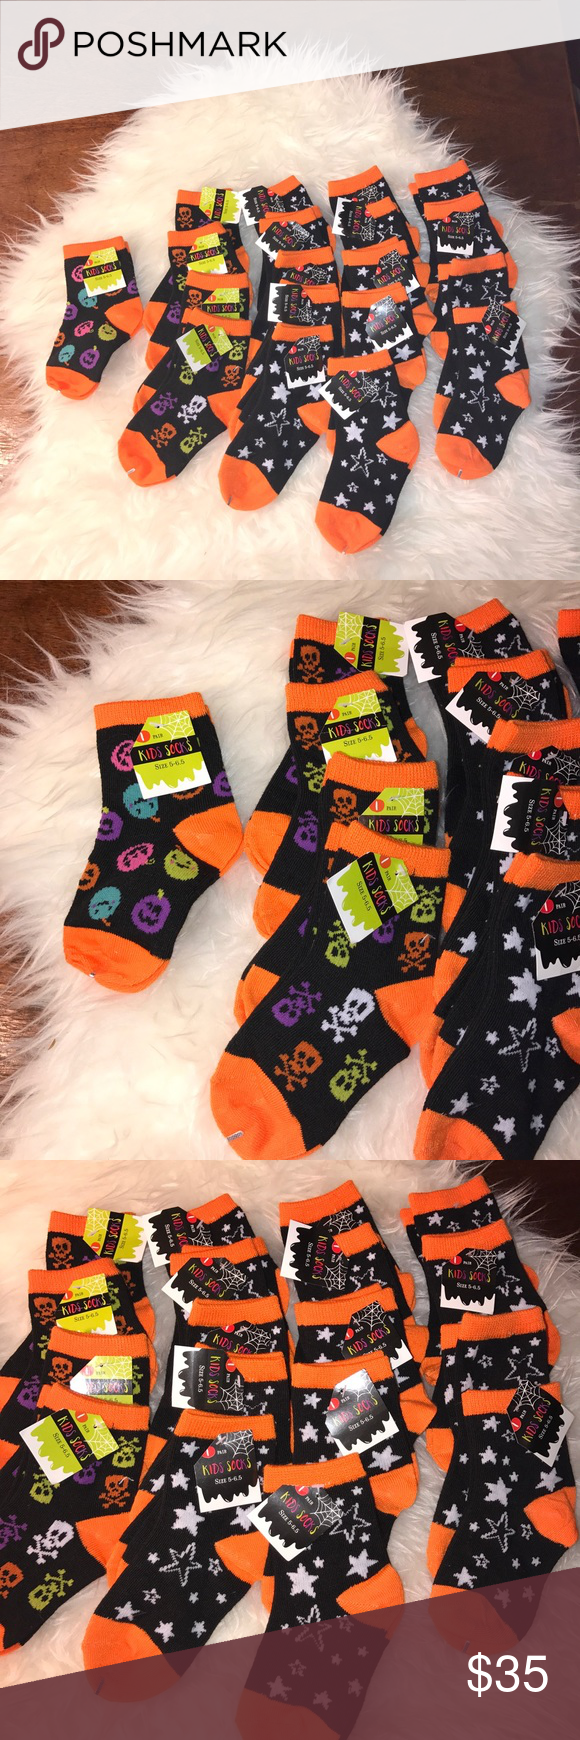 💲1️⃣5️⃣19 Halloween Socks (Size 5-6.5+) Kids This is a bundle of 19 size 5-6.5+ kids socks. 14 are in the orange black and white star print, four are in the multicolored skull with black and orange print and one is in the multicolored pumpkin with black and orange. All of these are brand new with tags attached and they come from a smoke free and pet free home. I bought these for a project but I didn't need as many as I thought I would 💗NO TRADES💗 Accessories Socks & Tights